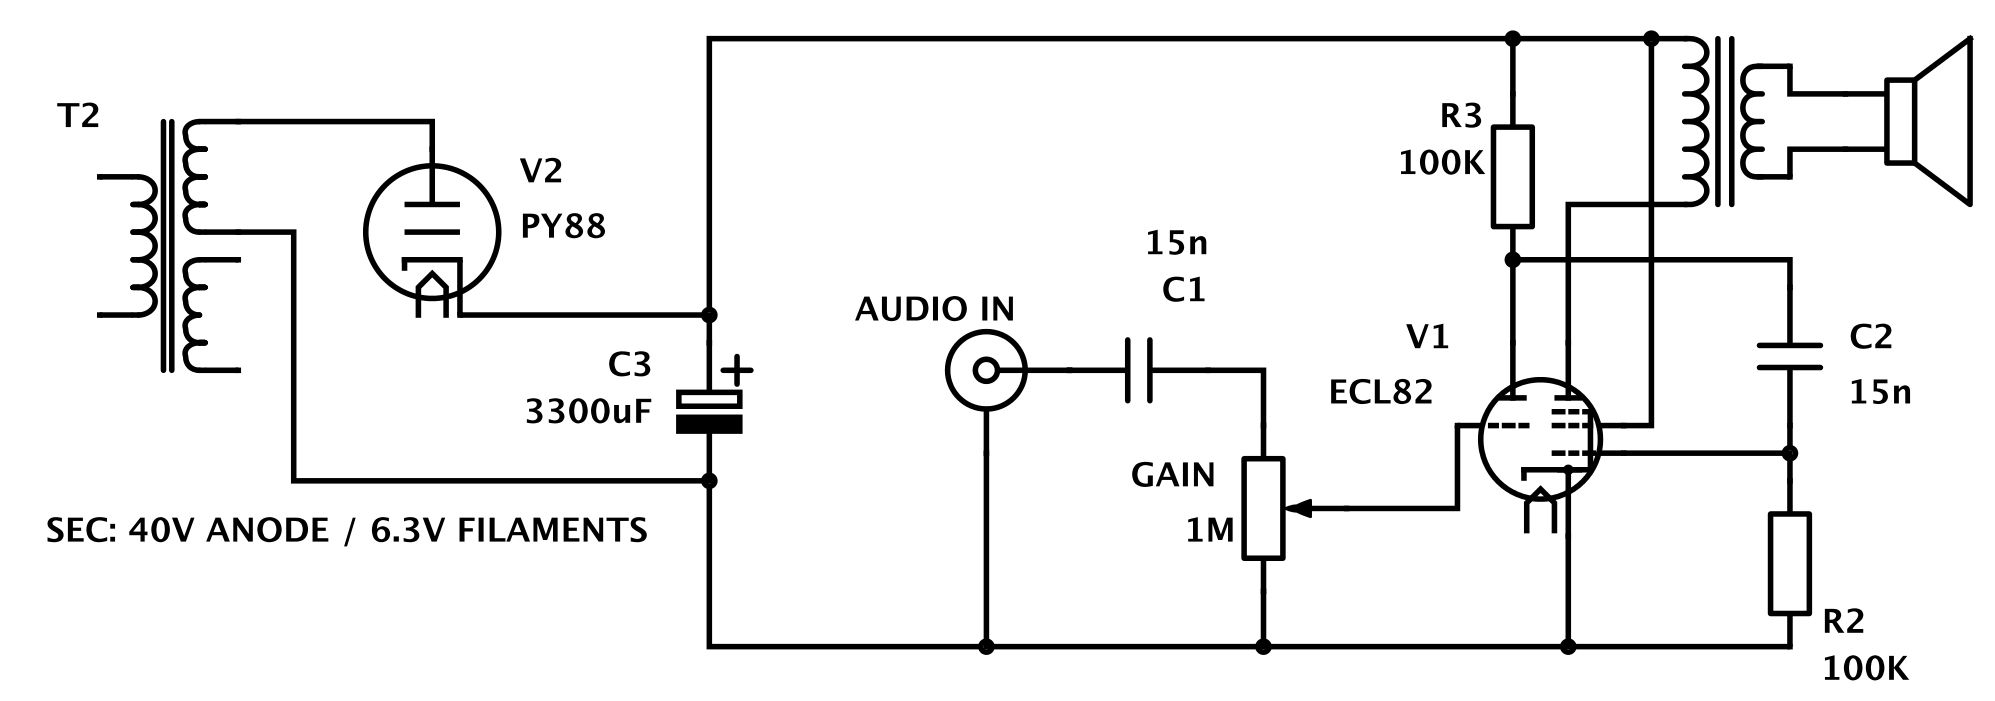 low voltage wiring for speakers